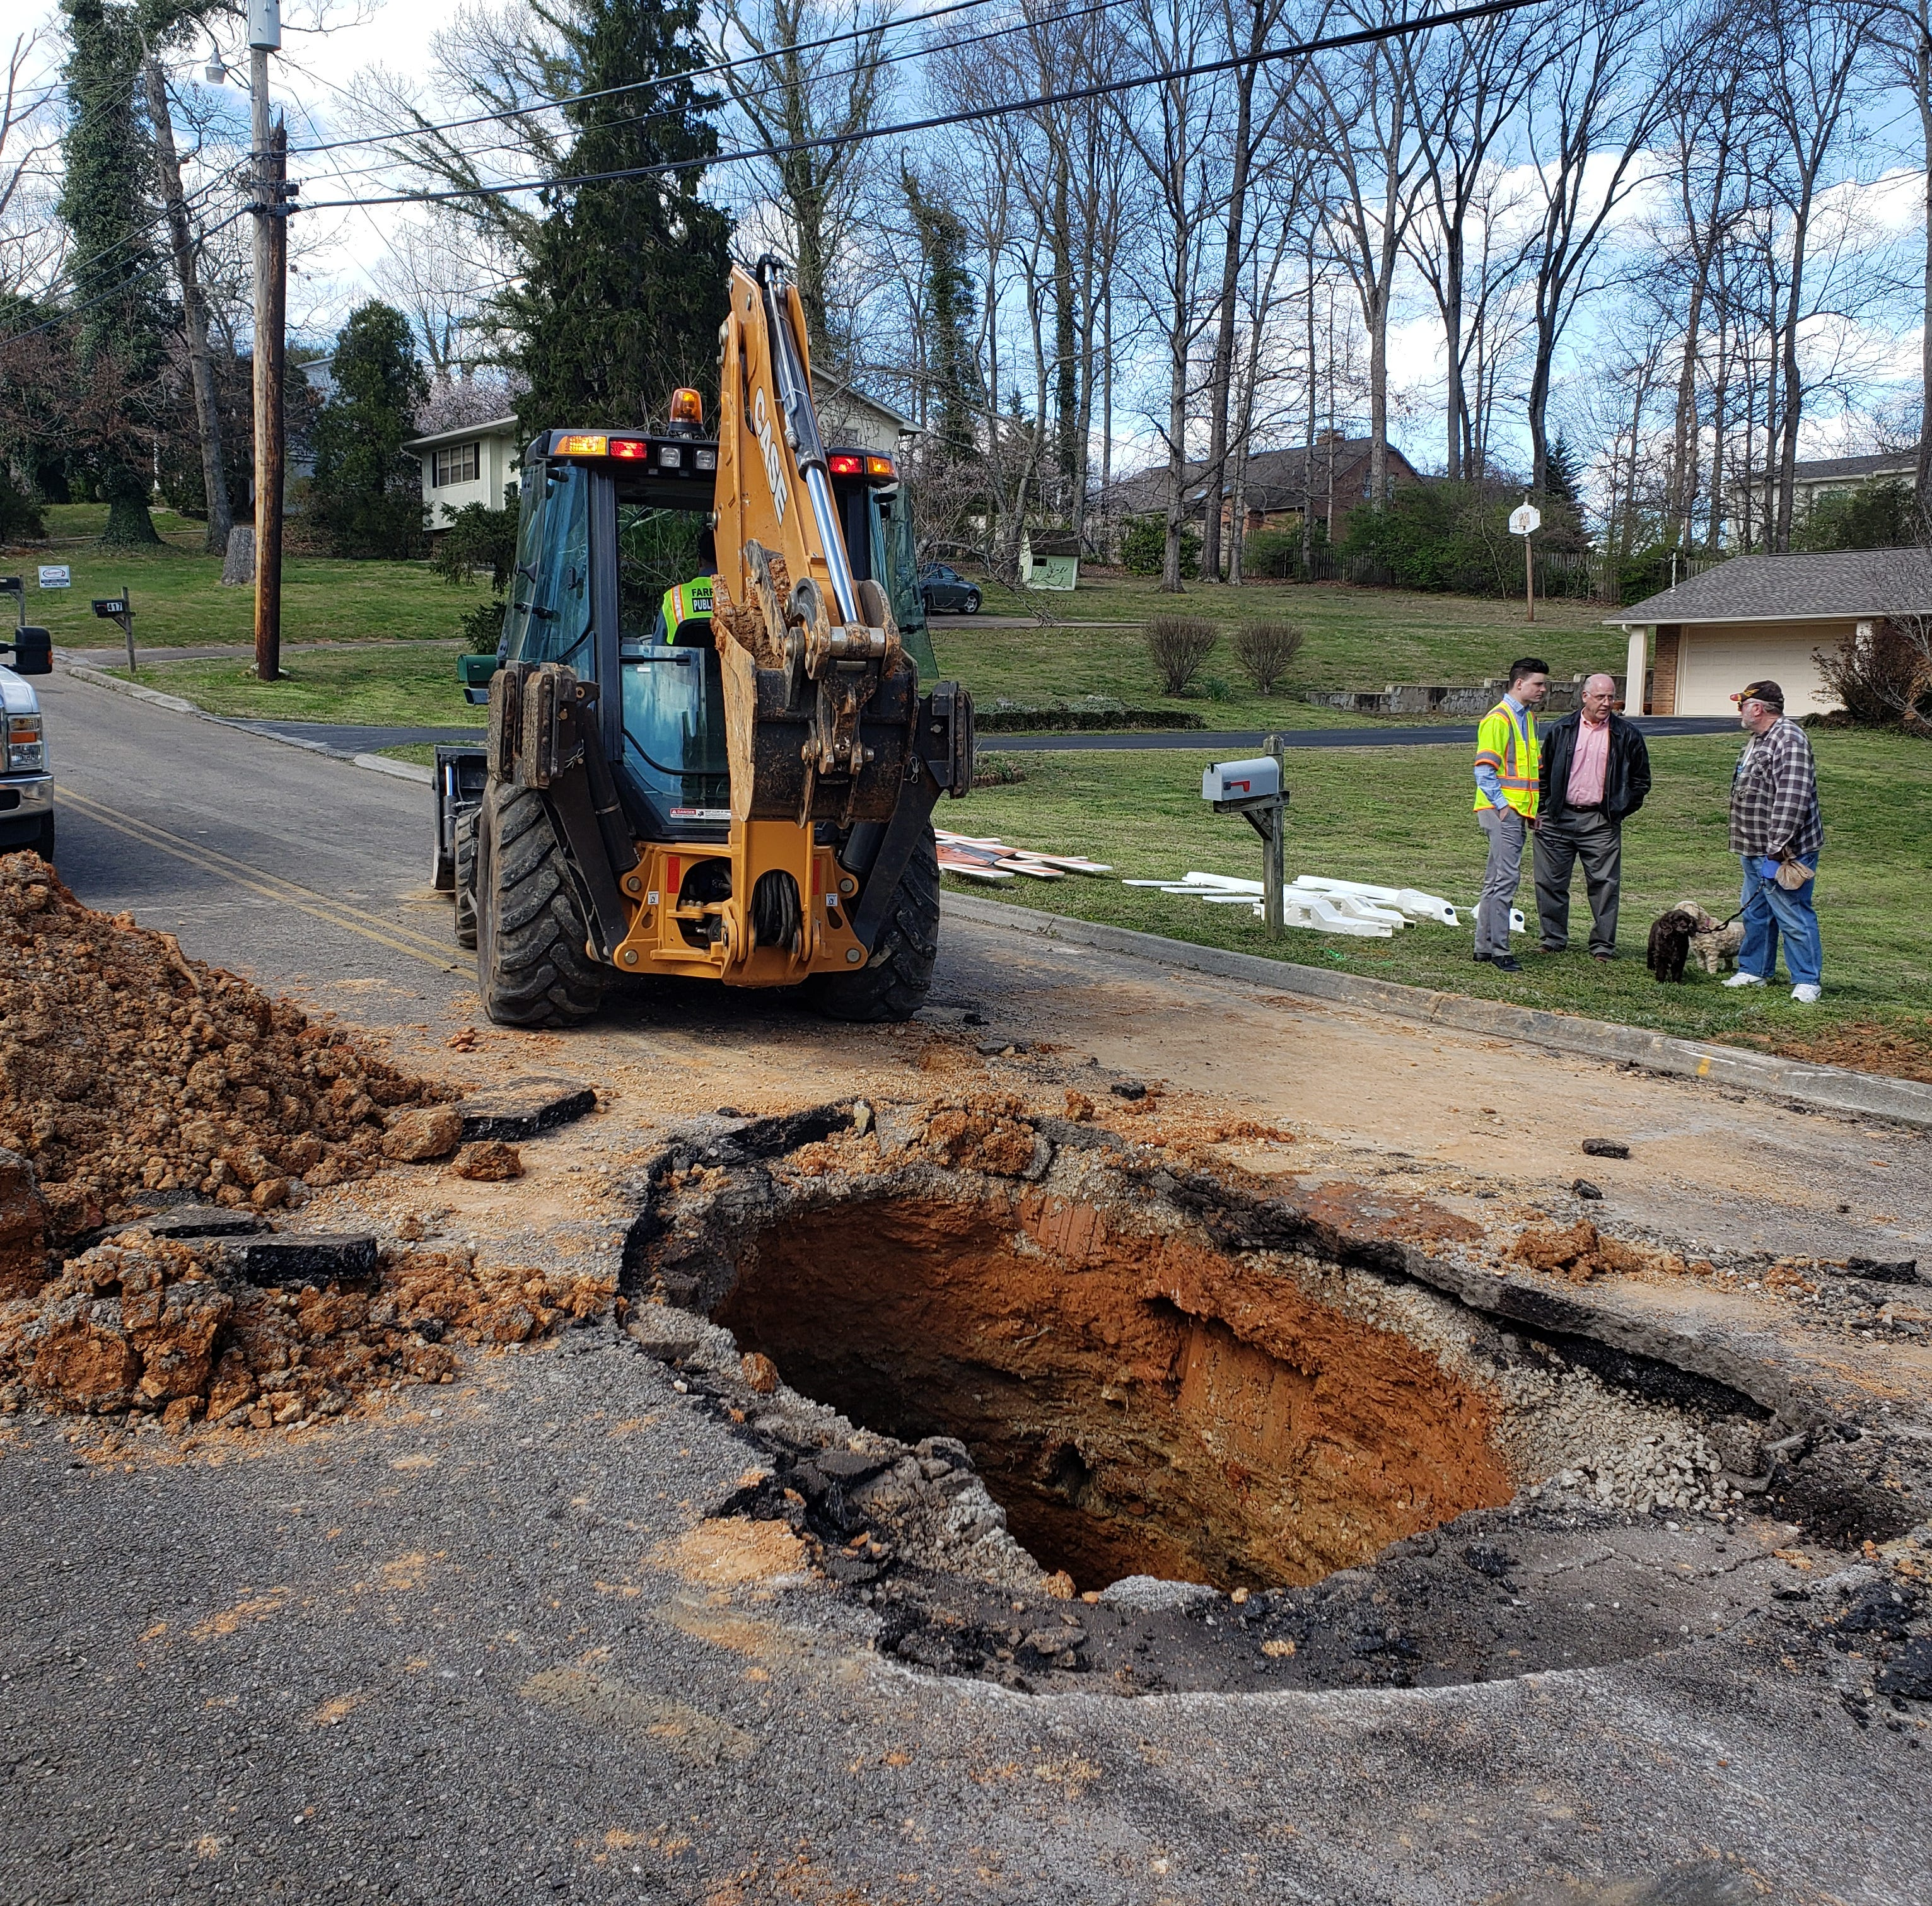 Sinkhole closes road in Farragut subdivision after recent flooding